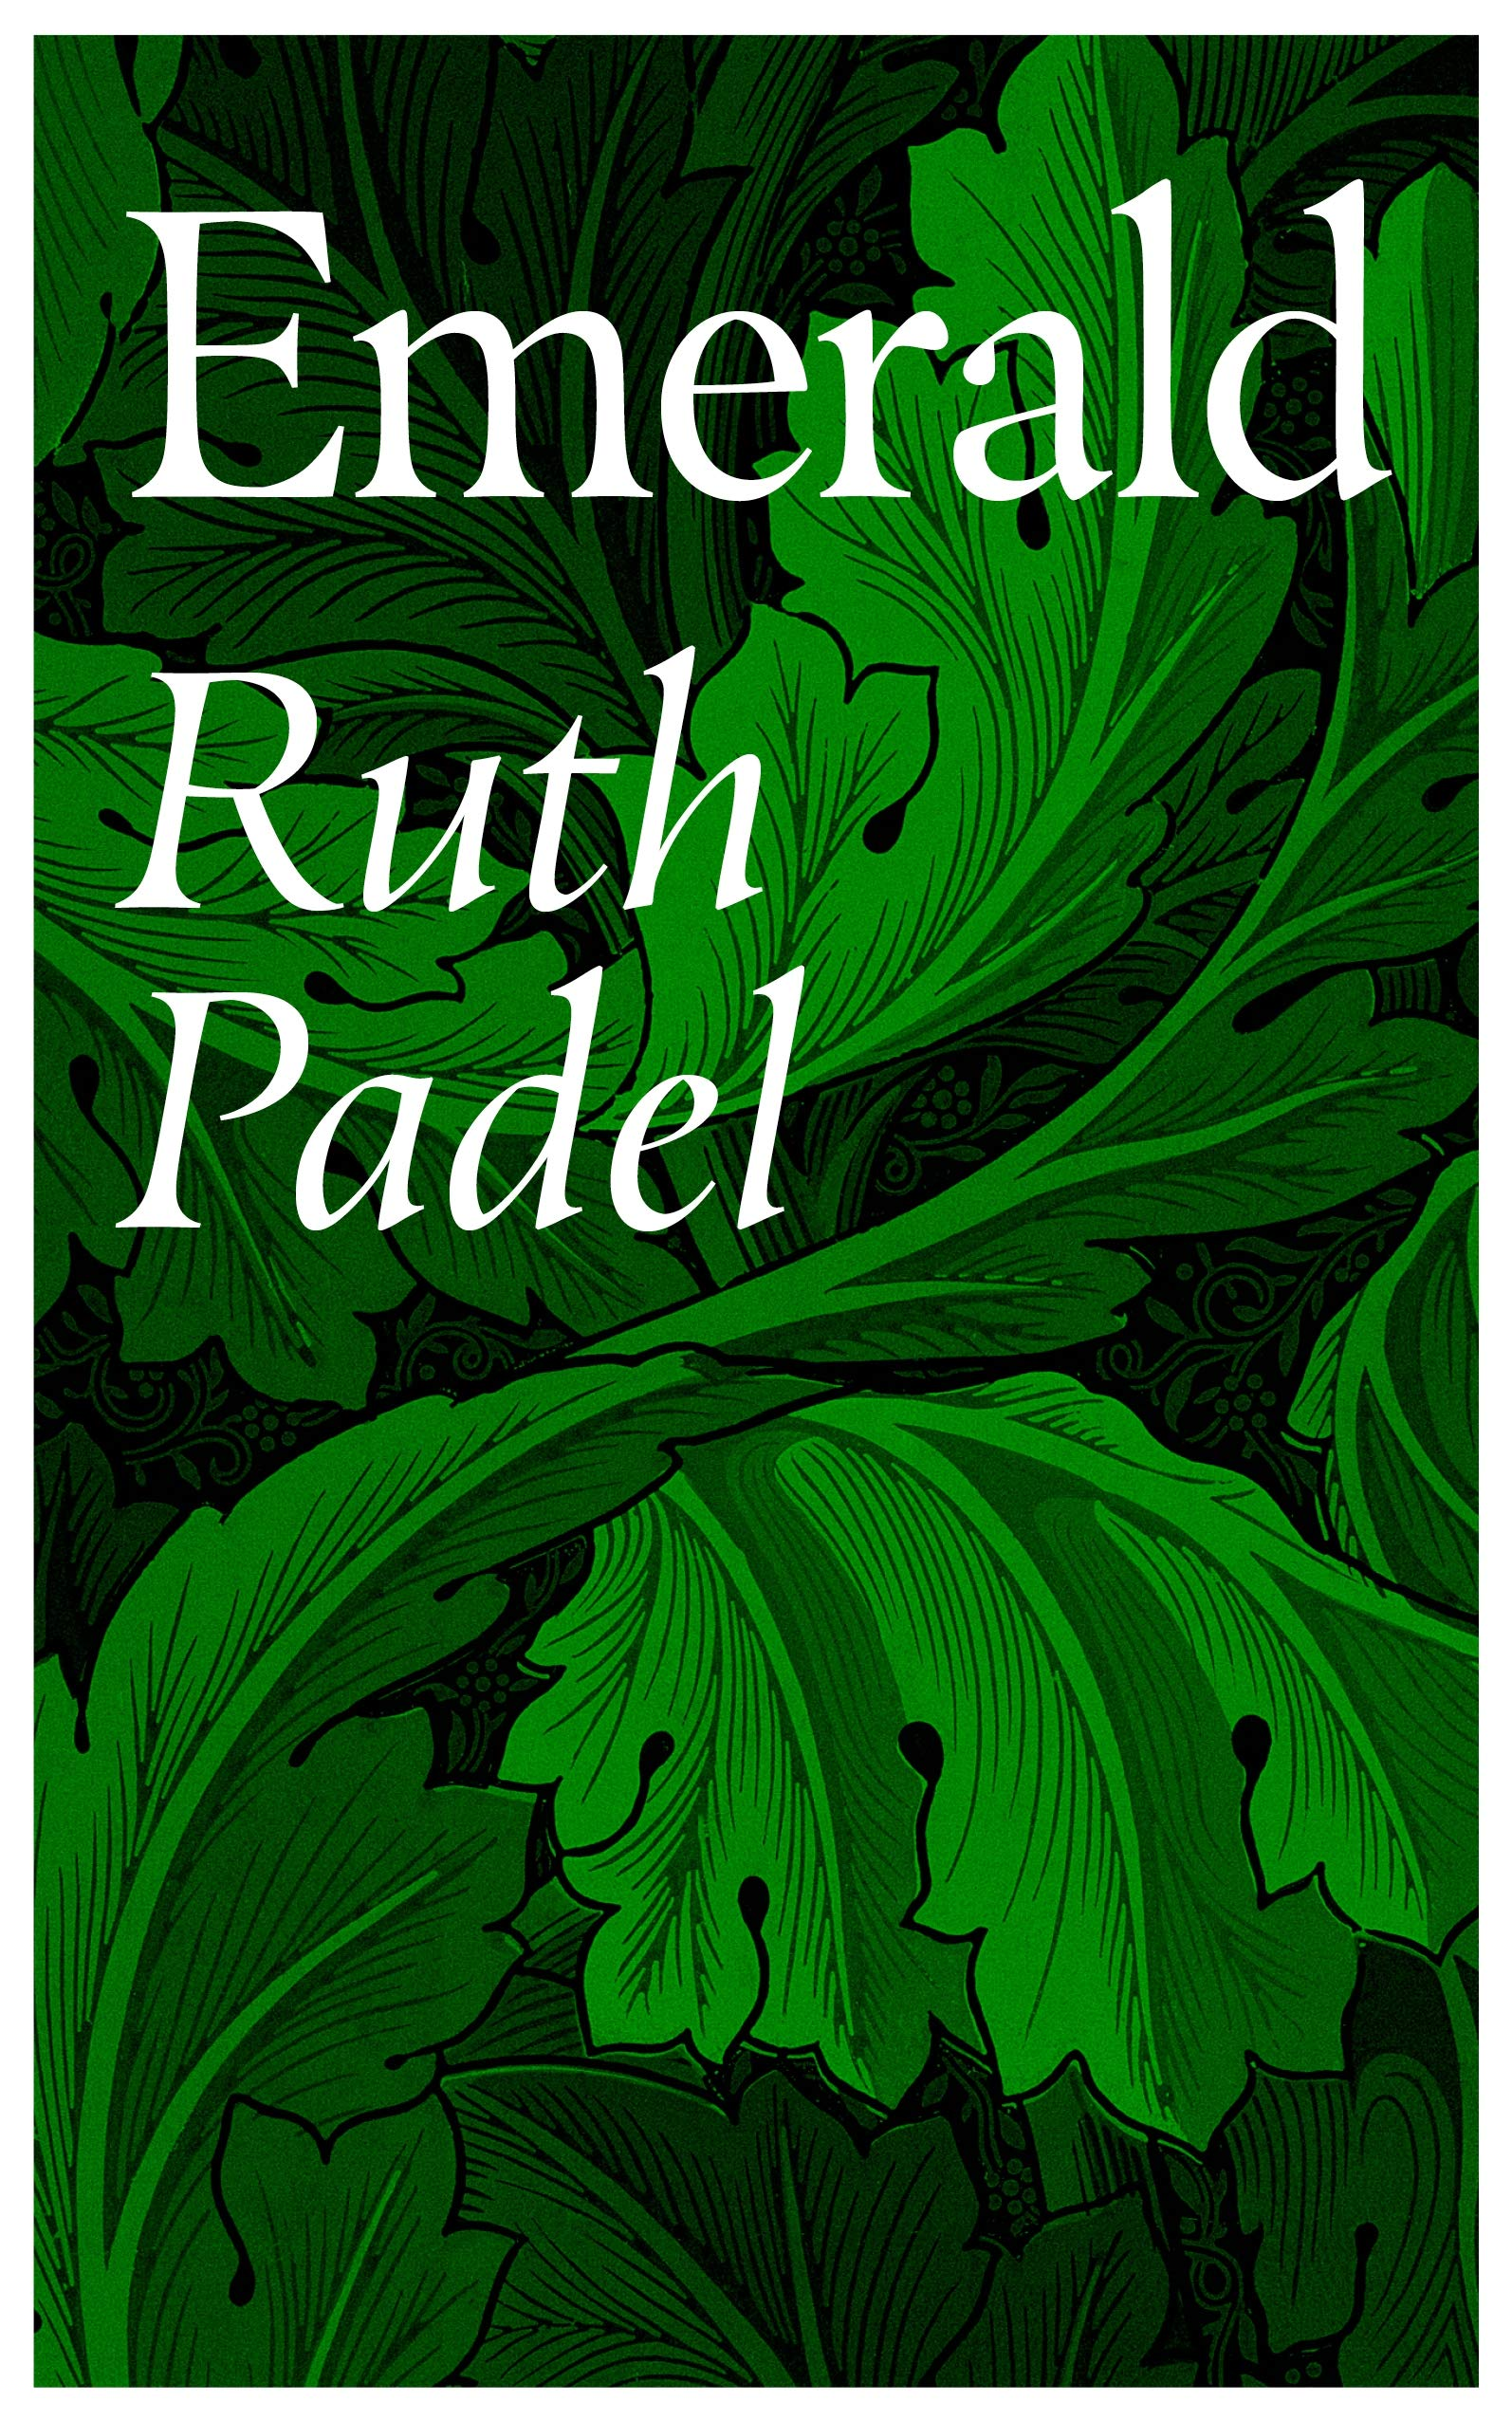 Follow the Author. Ruth Padel